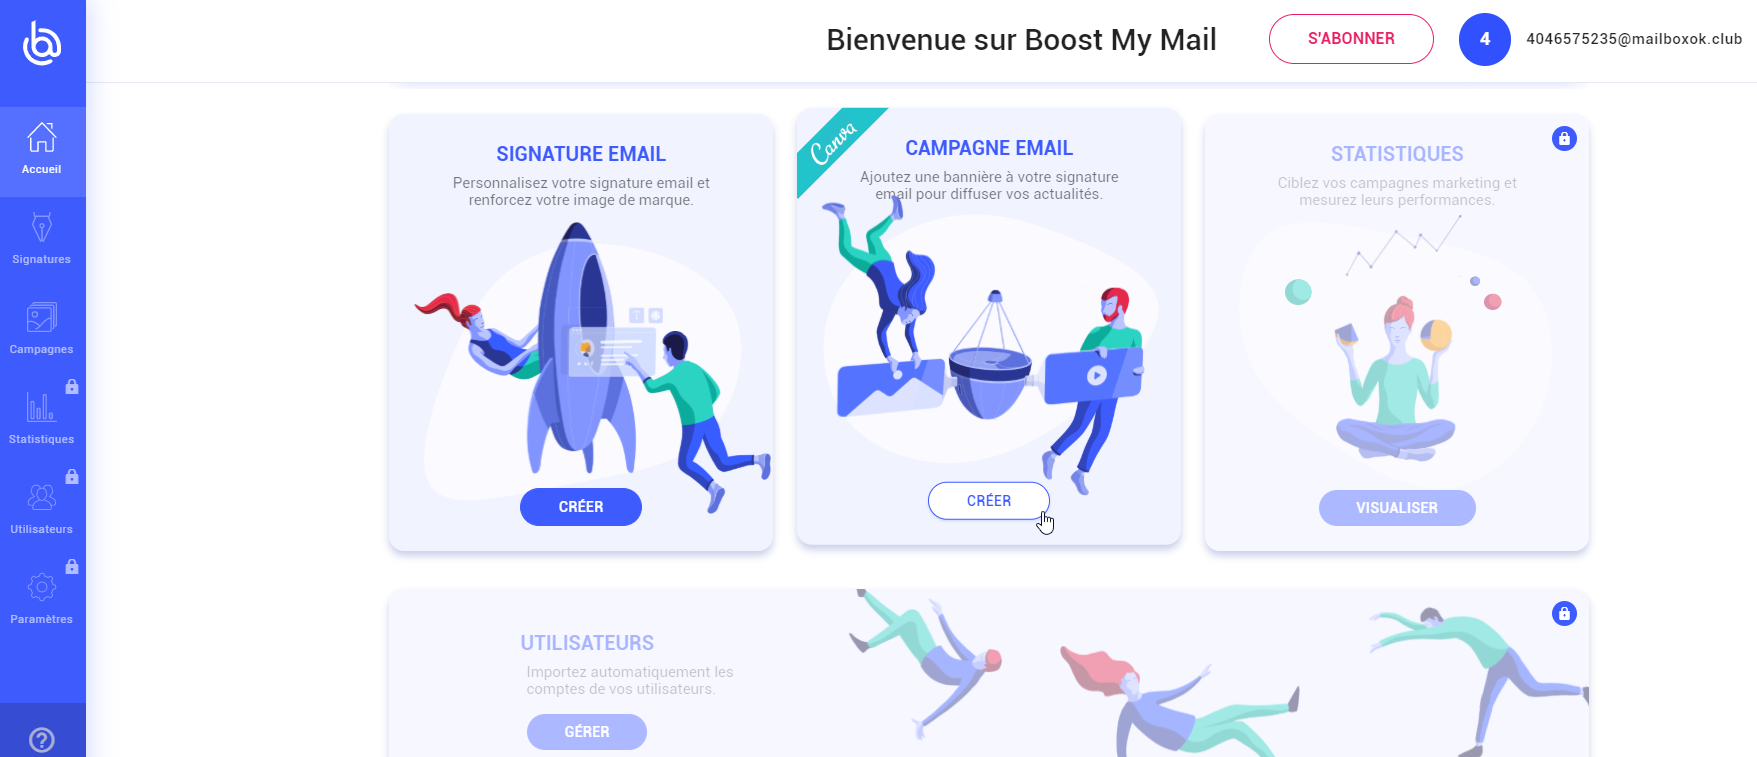 Boost My Mail-canva_1